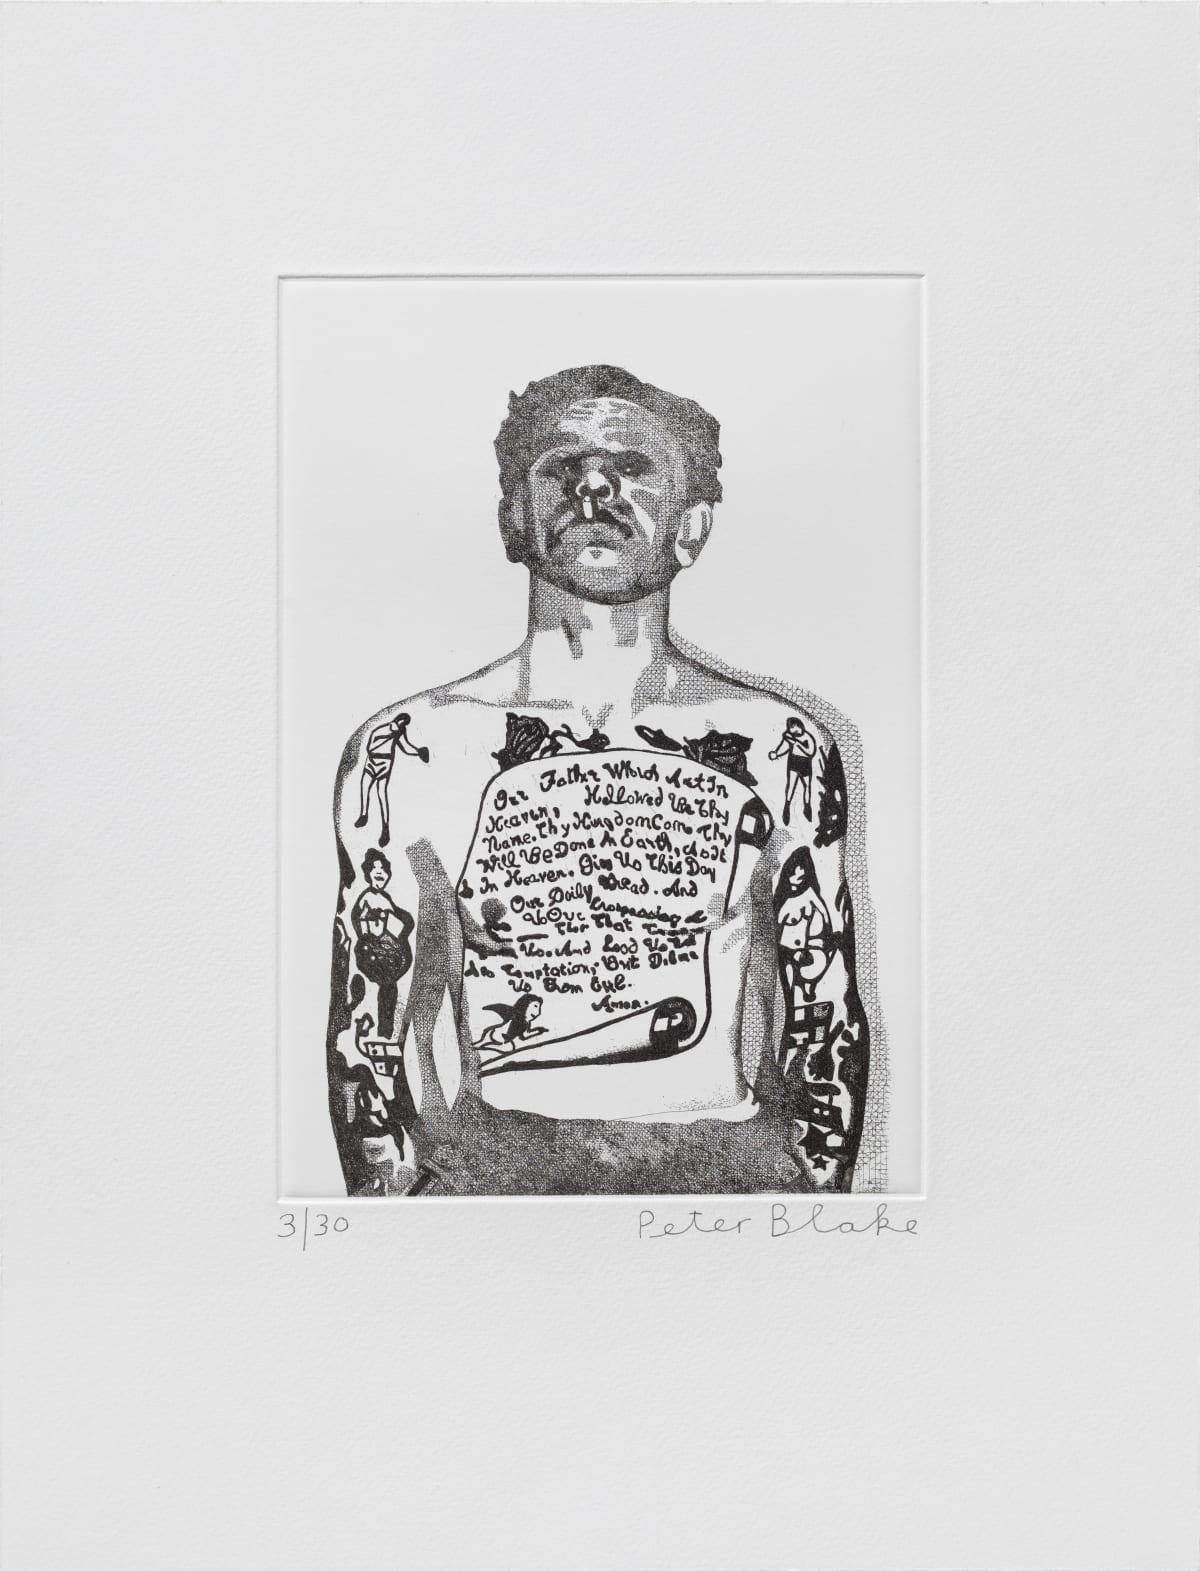 Peter Blake Reverend Ricky Wreck, 2014 Etching on Somerset white 300gsm. Signed and numbered 43 x 33 cm Edition of 30